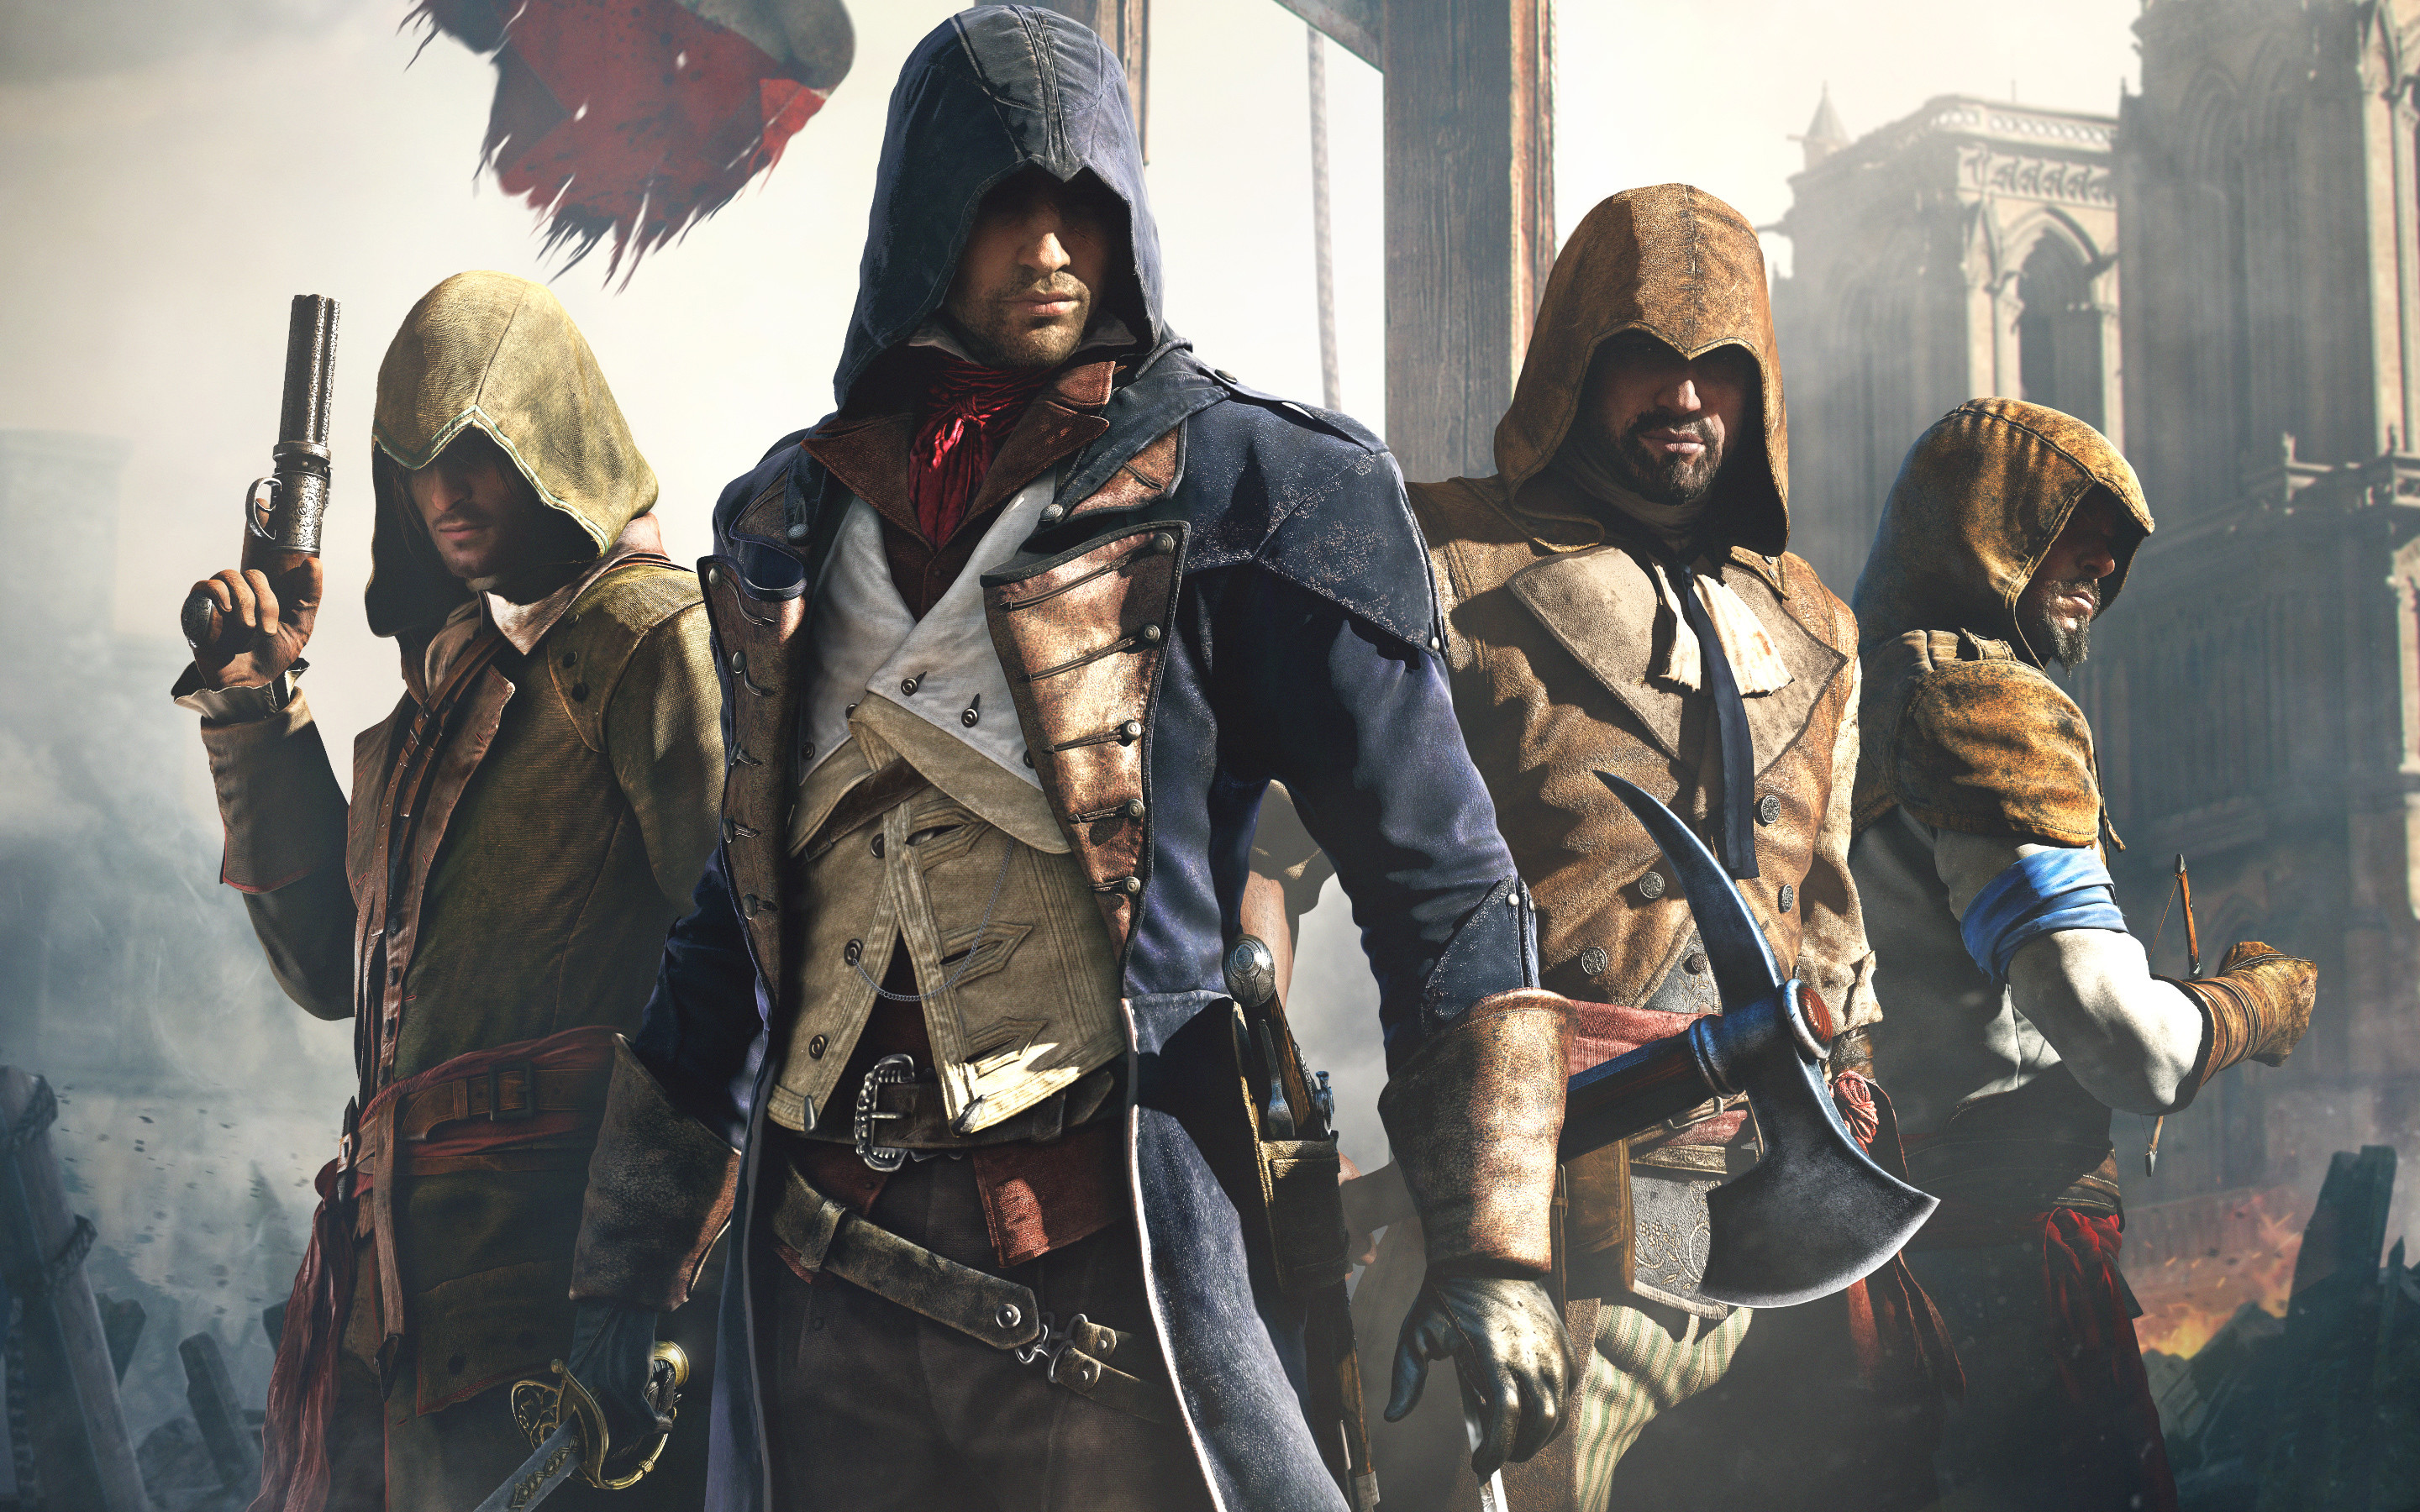 2880x1800 Video Game - Assassin's Creed: Unity Wallpaper